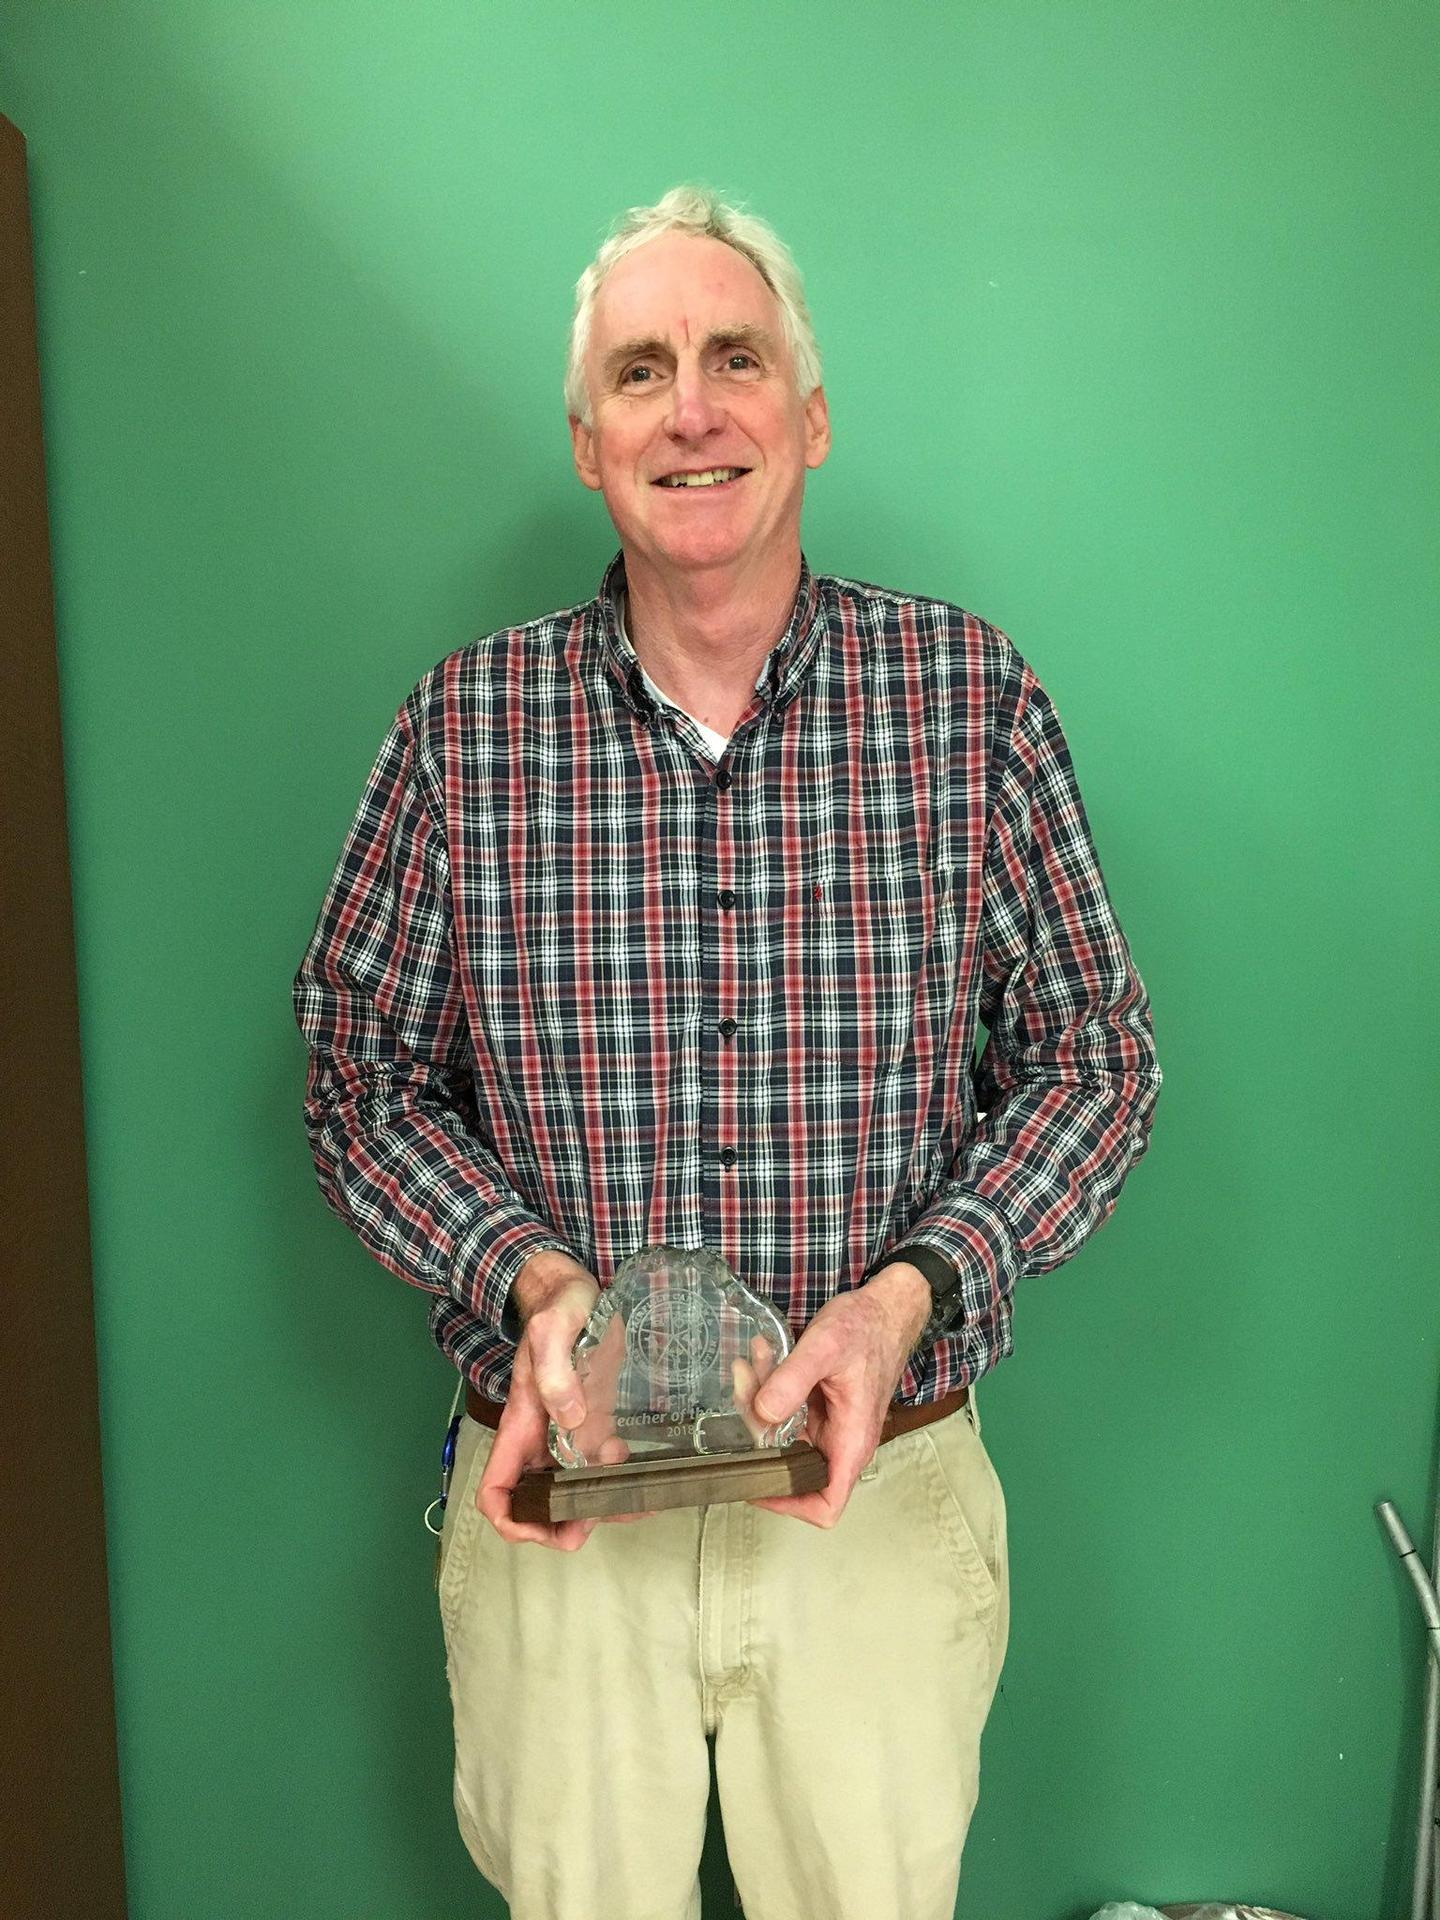 Mr. Johnson holding his TOY Award